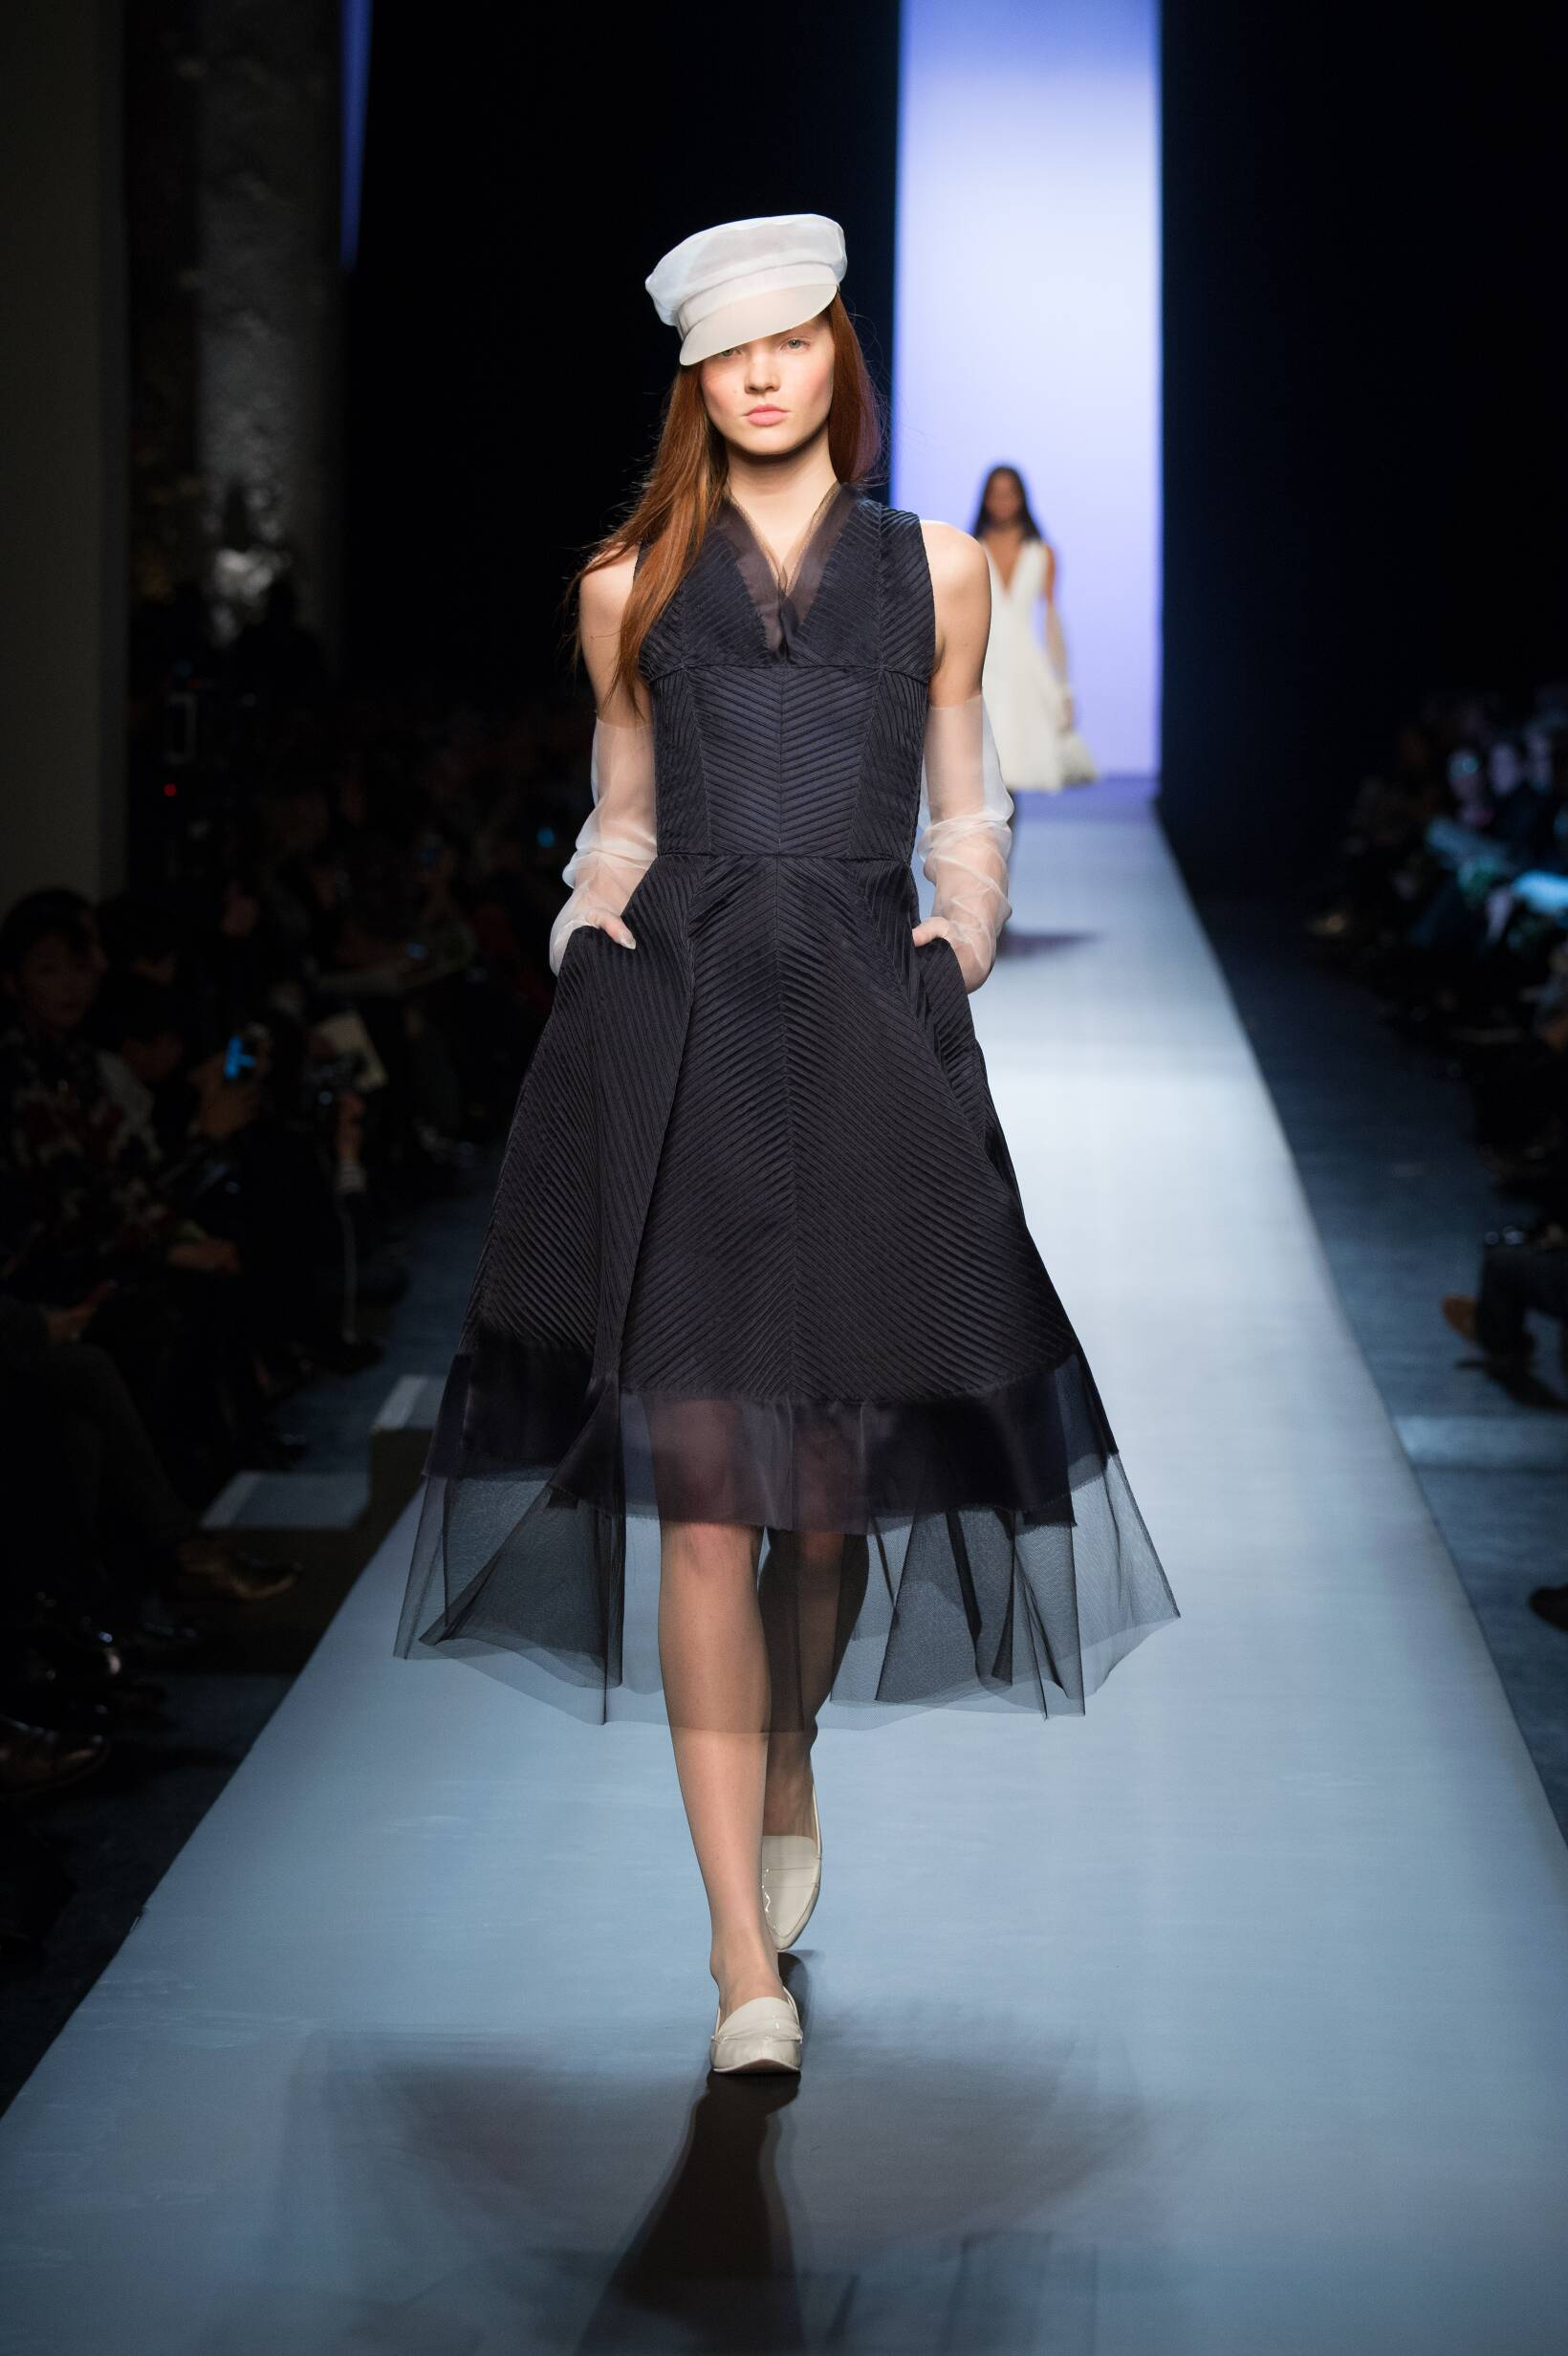 Jean Paul Gaultier Haute Couture Spring Summer 2015 Womens Collection Paris Fashion Week